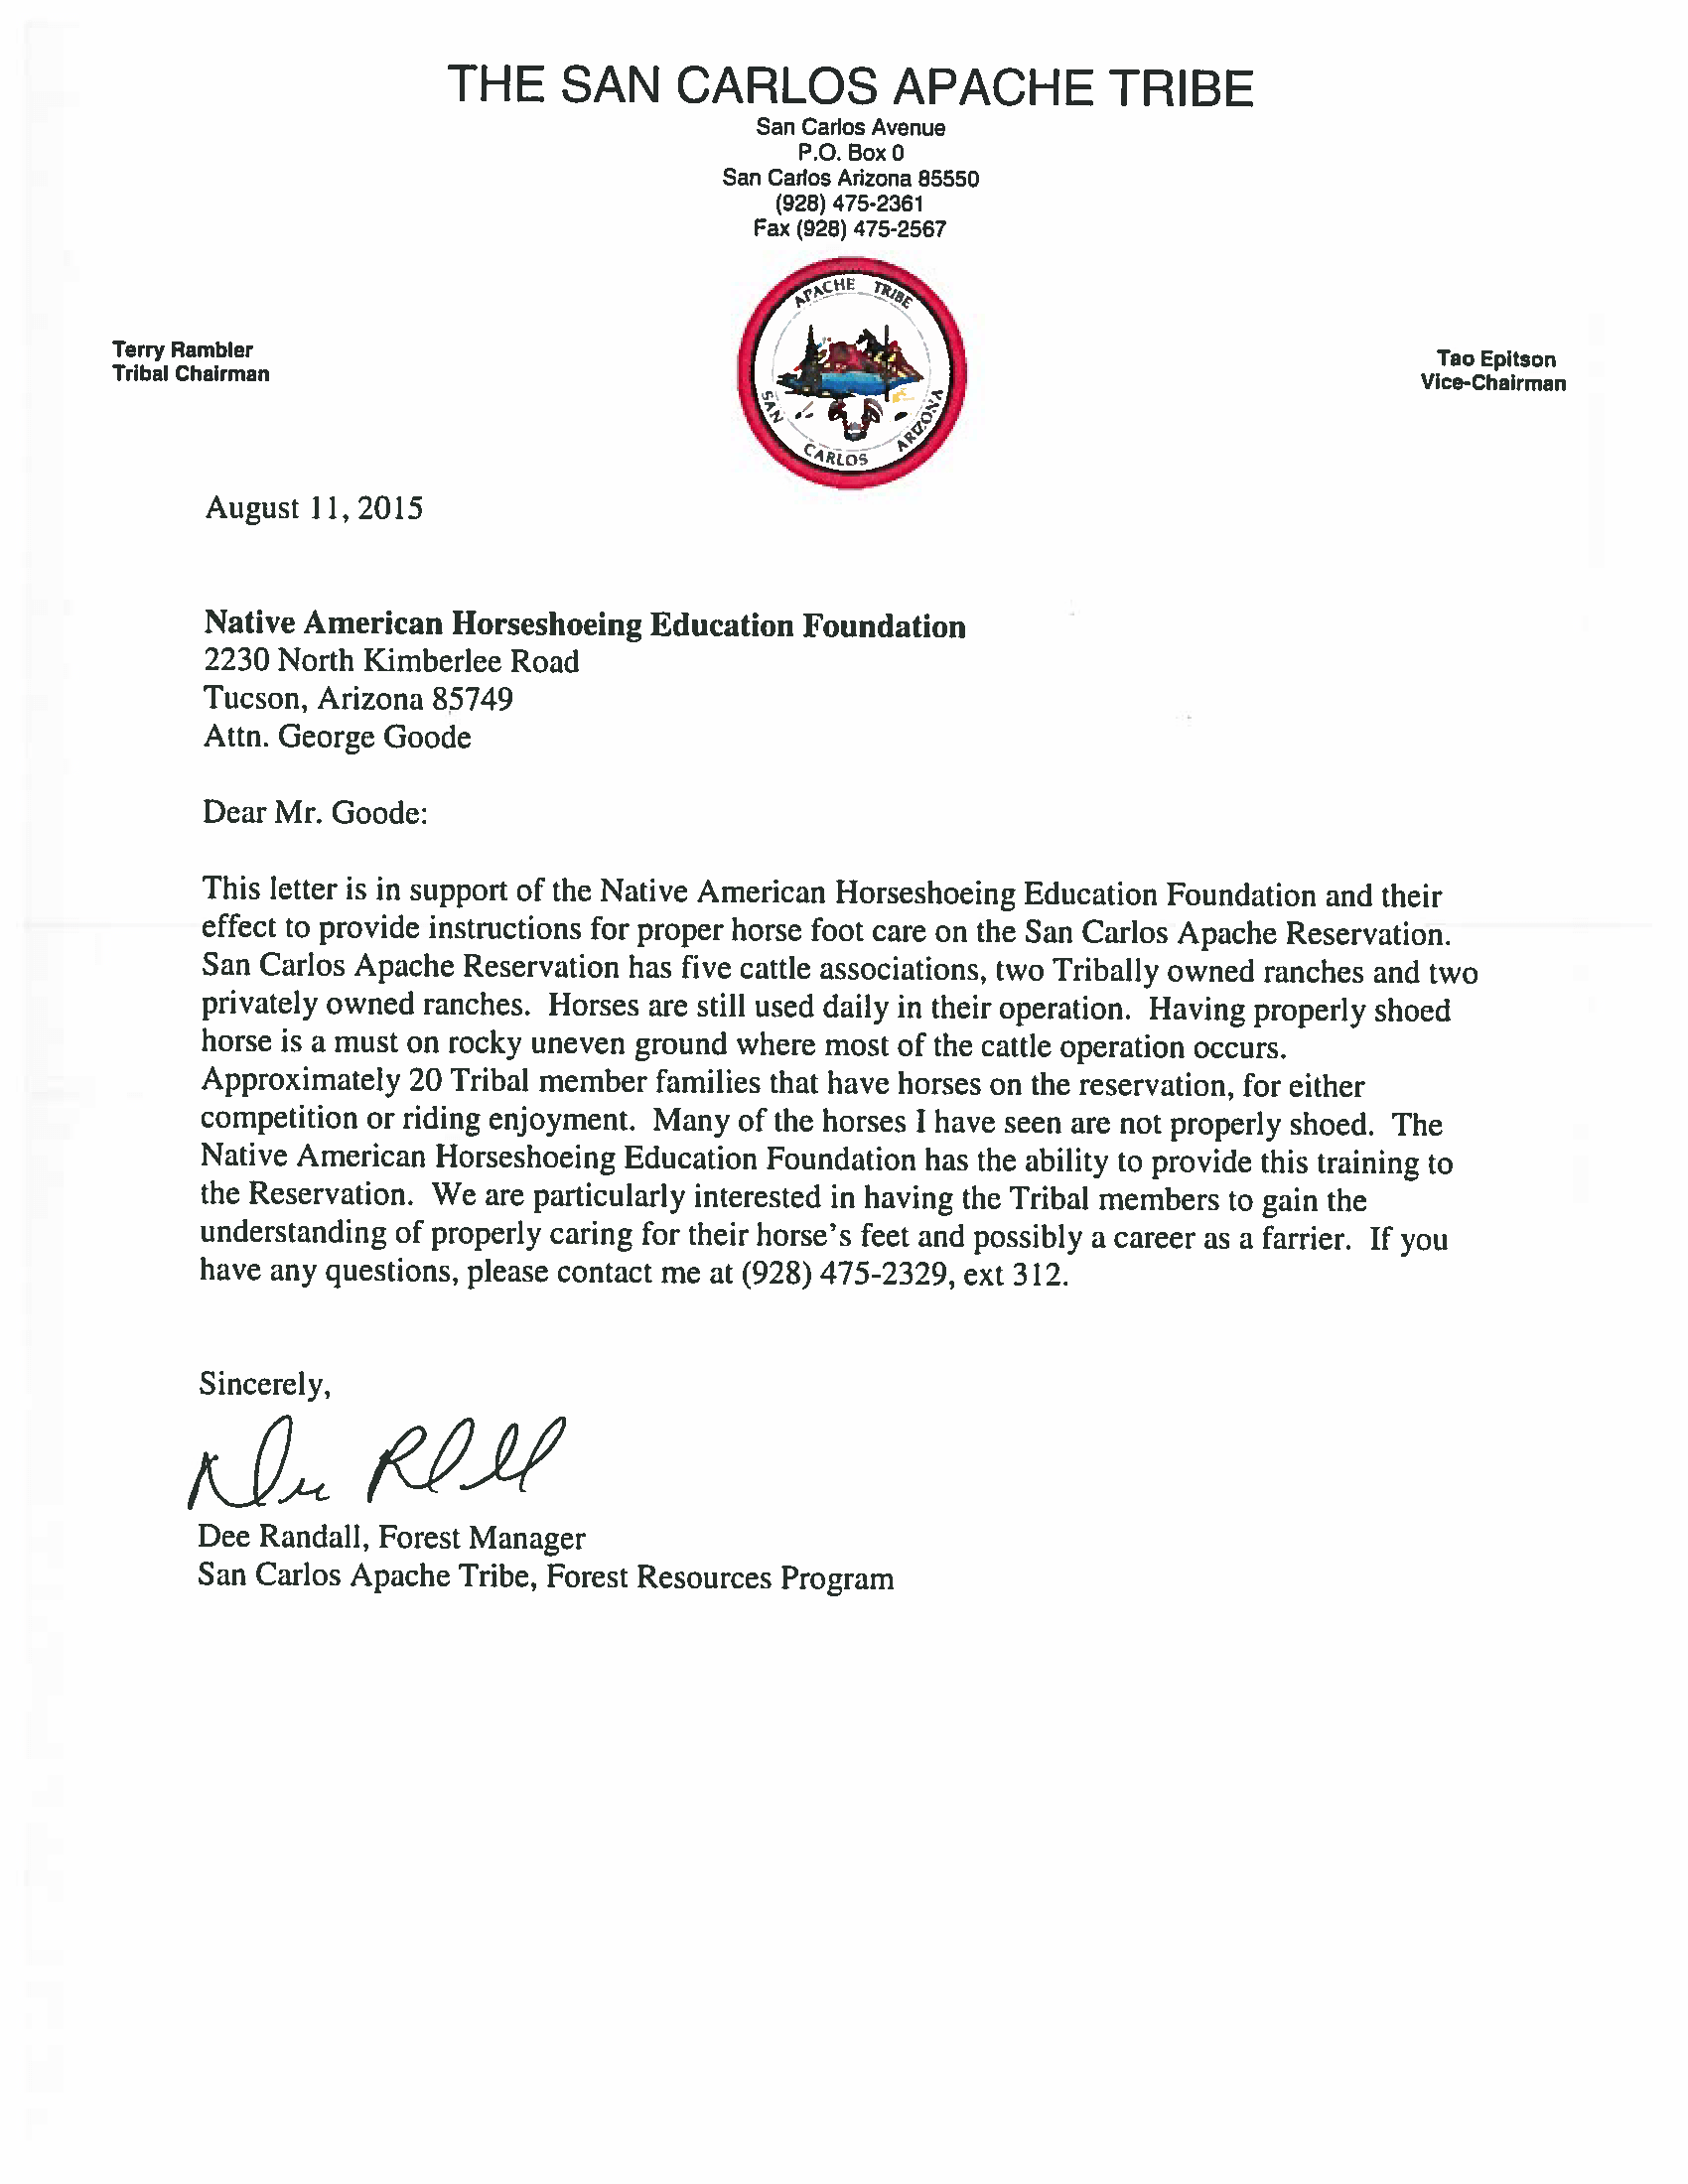 Letter of Support from the San Carlos Apache Tribe